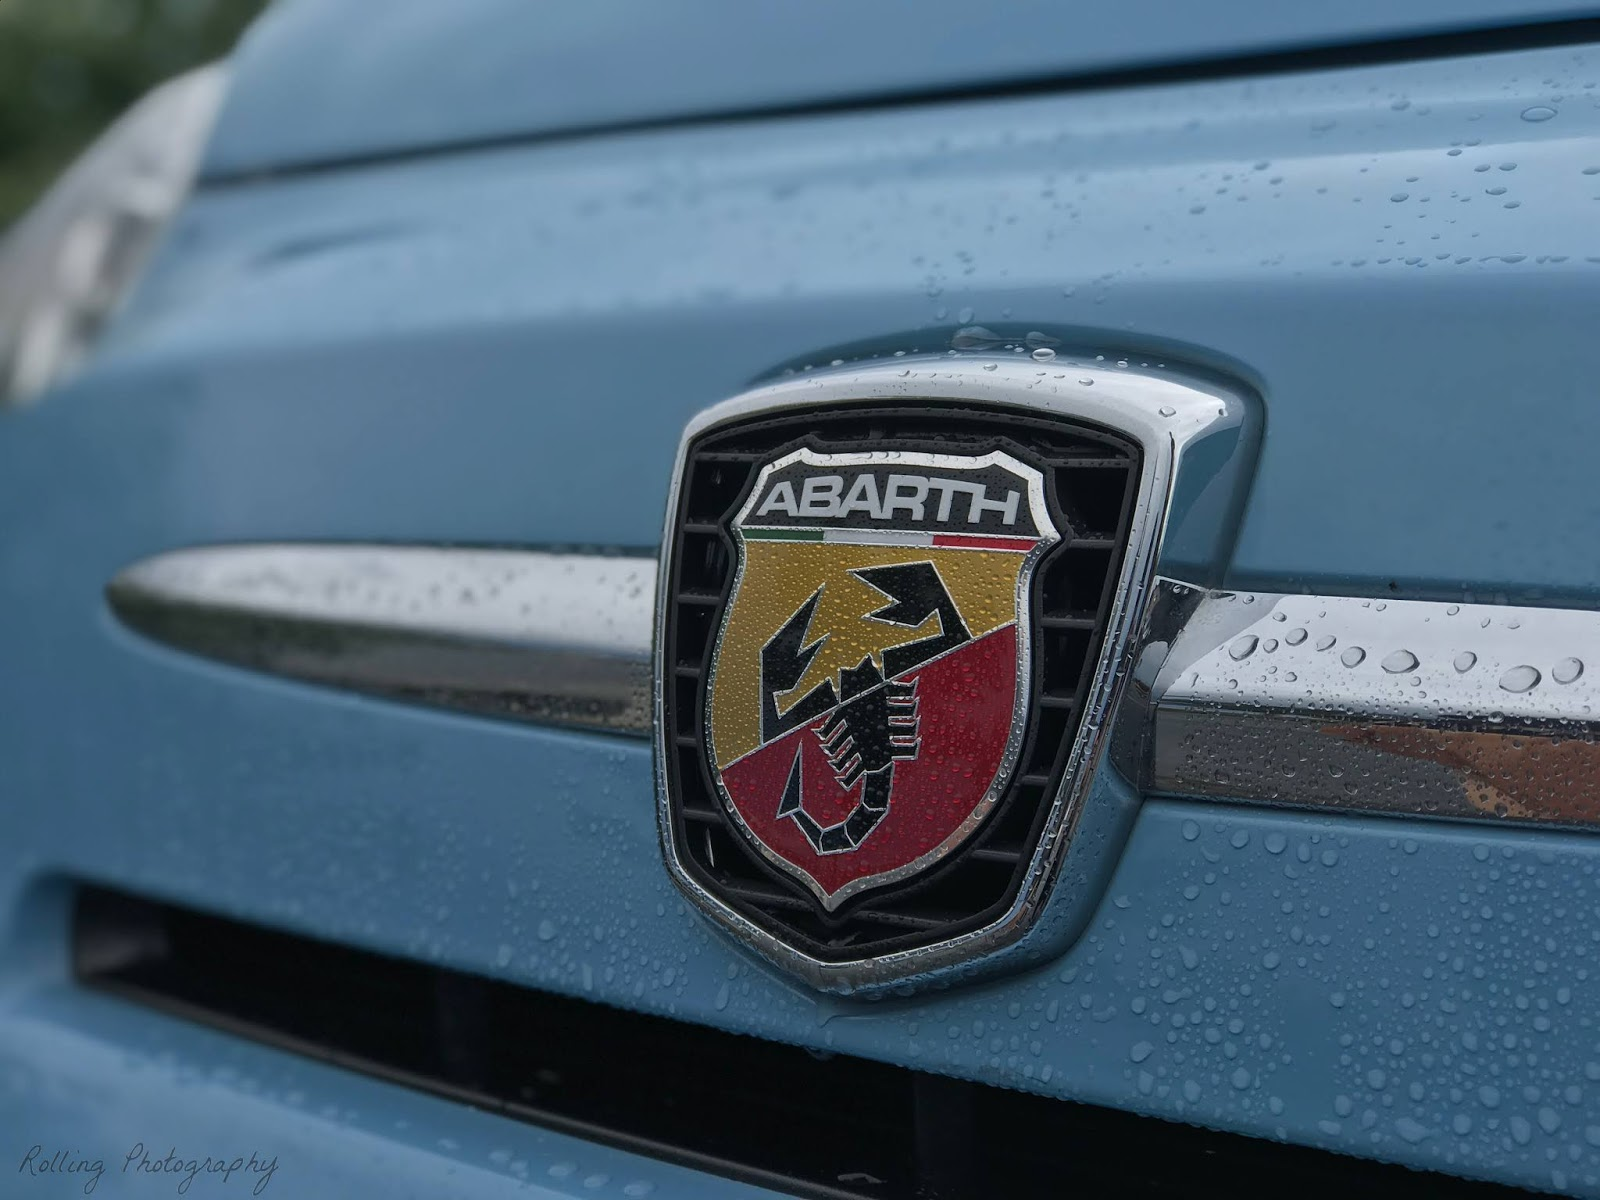 2017 500 Abarth Rain Insignia Edit.jpg